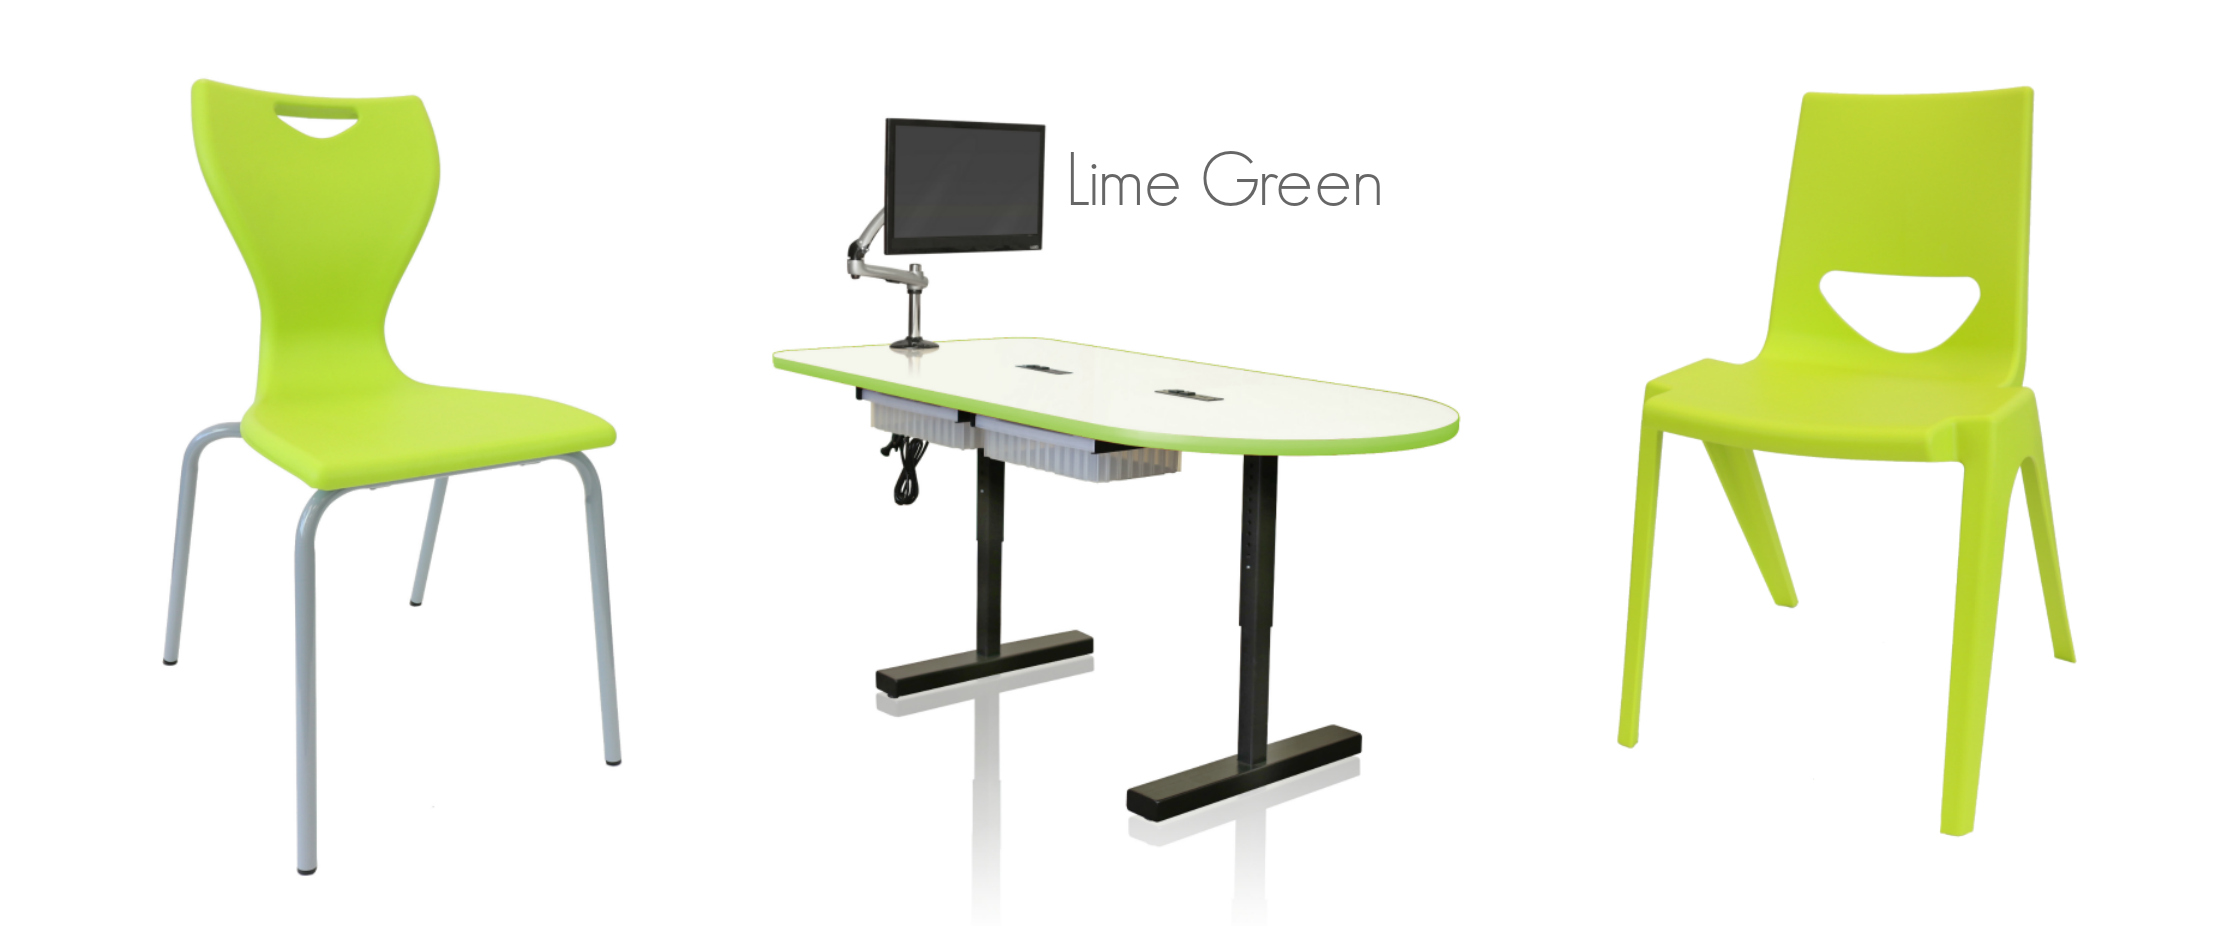 CEF Lime Green Table and Chairs with name.jpg